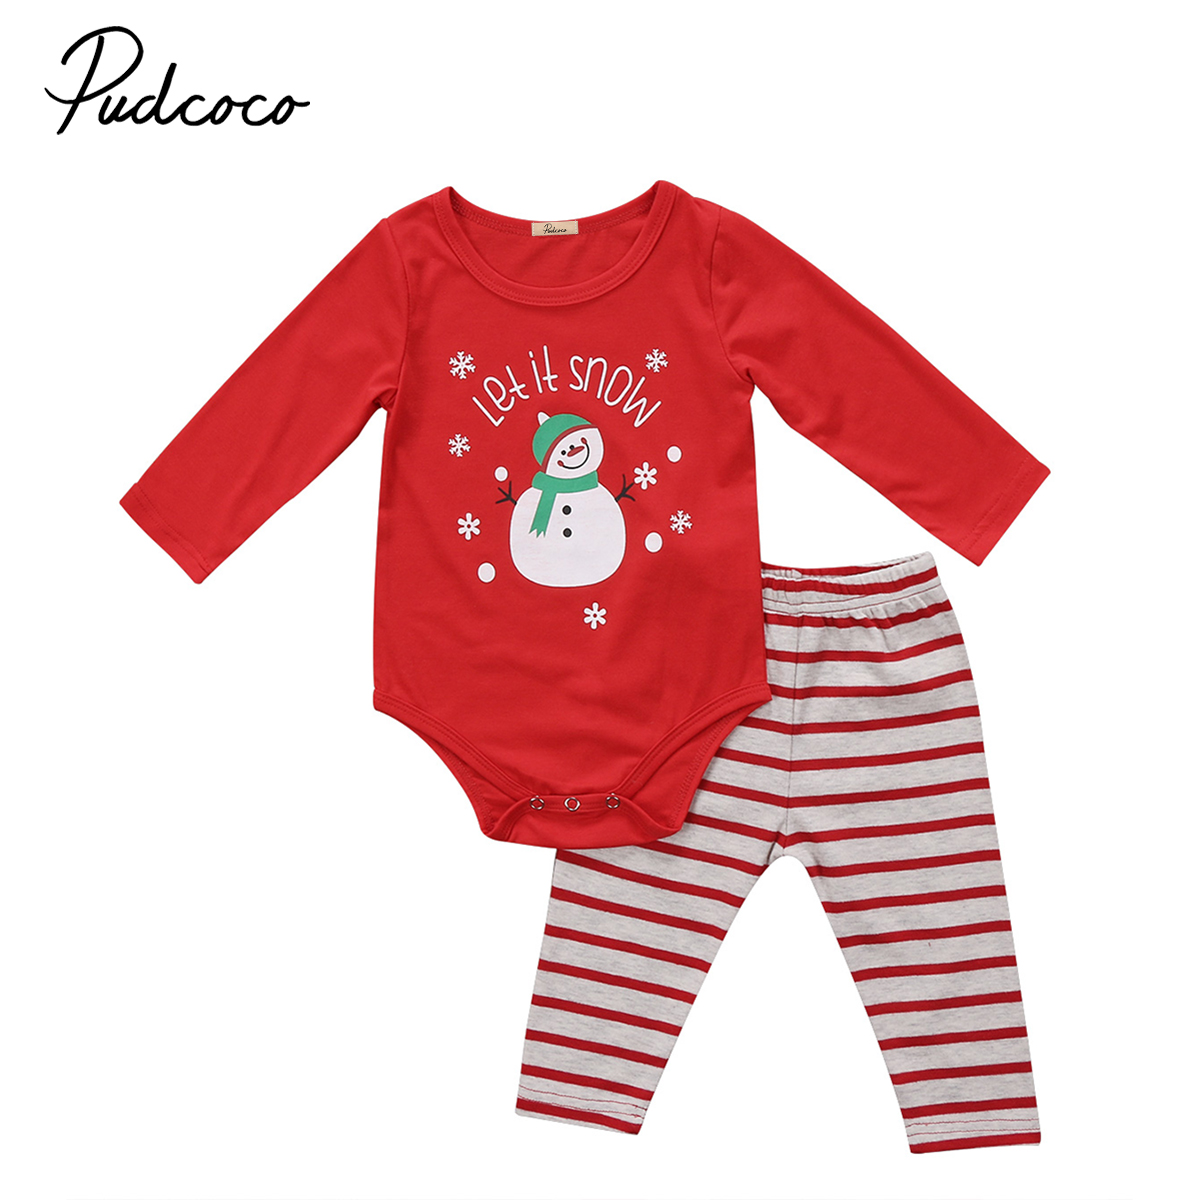 2PCS Newborn Baby Boys Girls Long Sleeve Tops Romper Pants Leggings Xmas Outfits Clothes Set